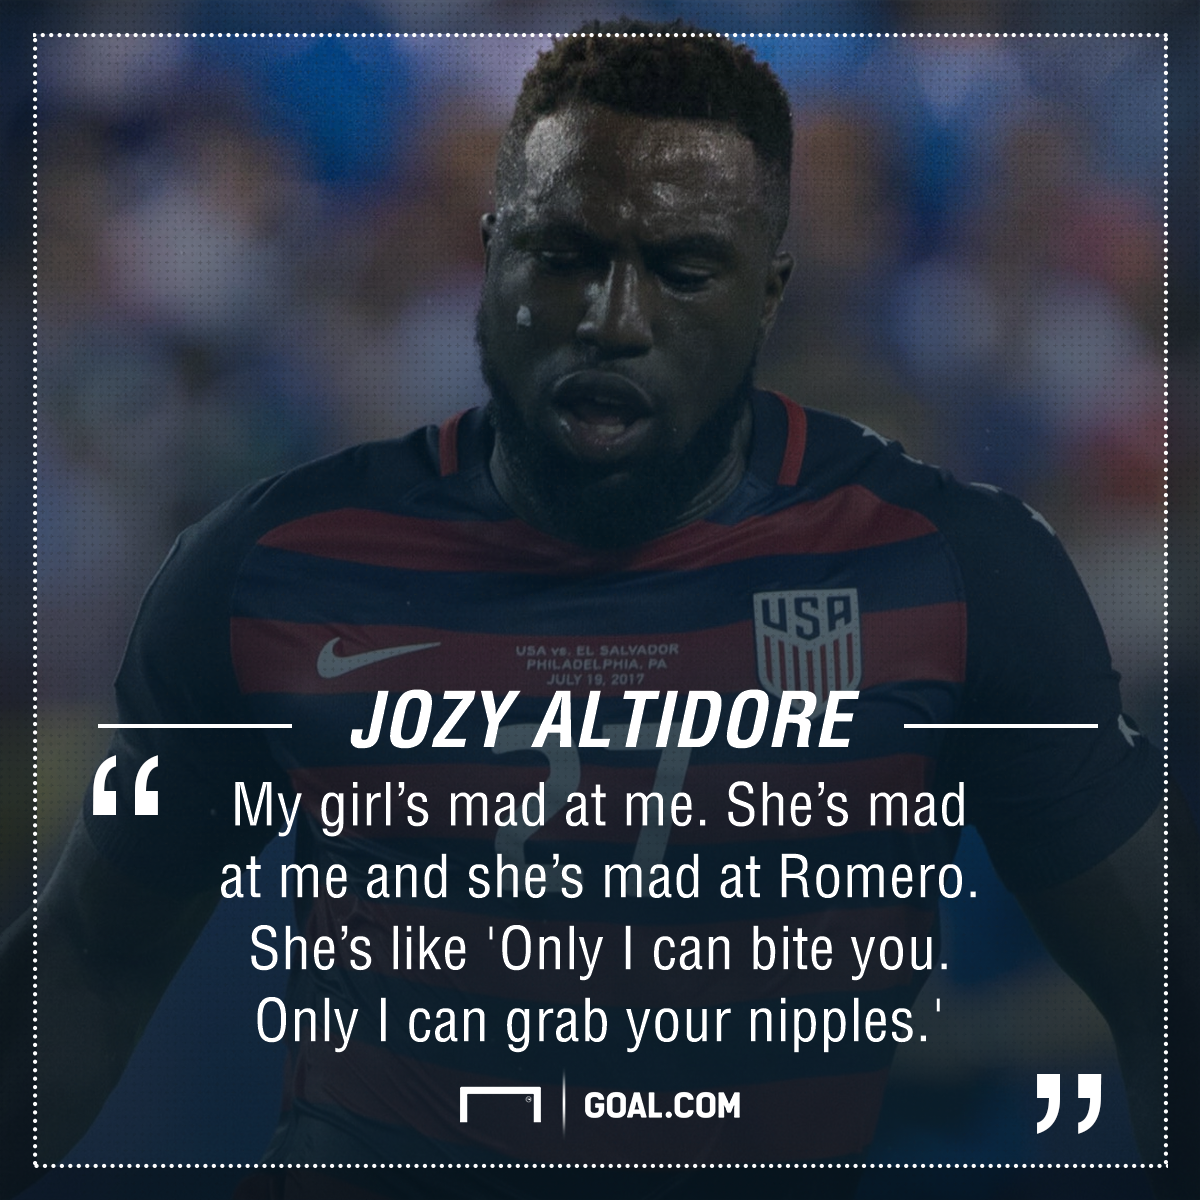 Jozy Altidore quote